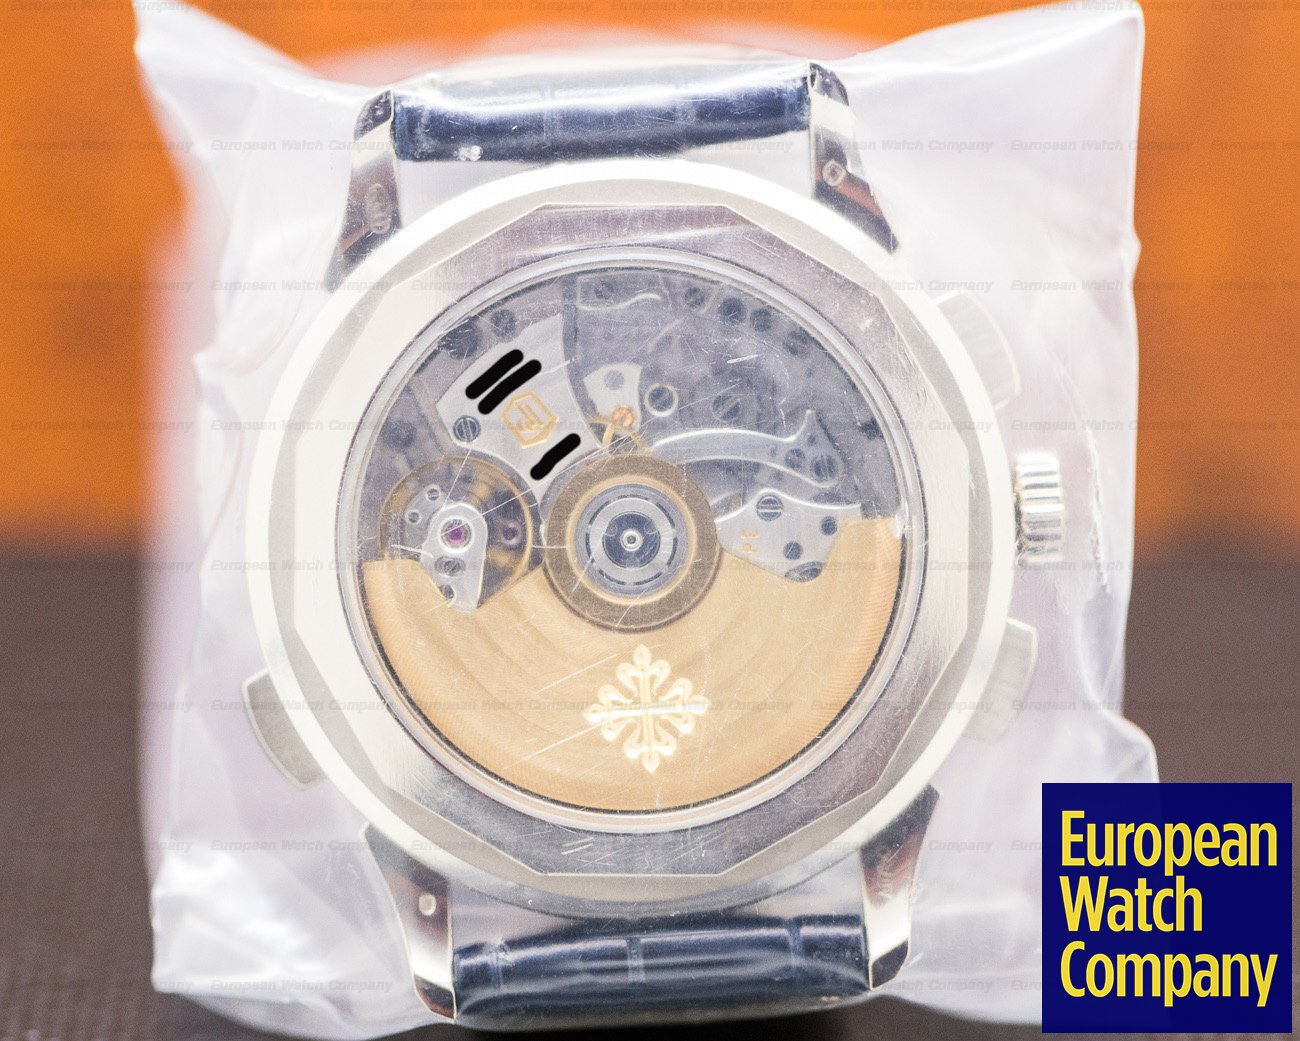 Patek Philippe 5930G-001 World Time Chronograph 18k White Gold UNWORN & SEALED